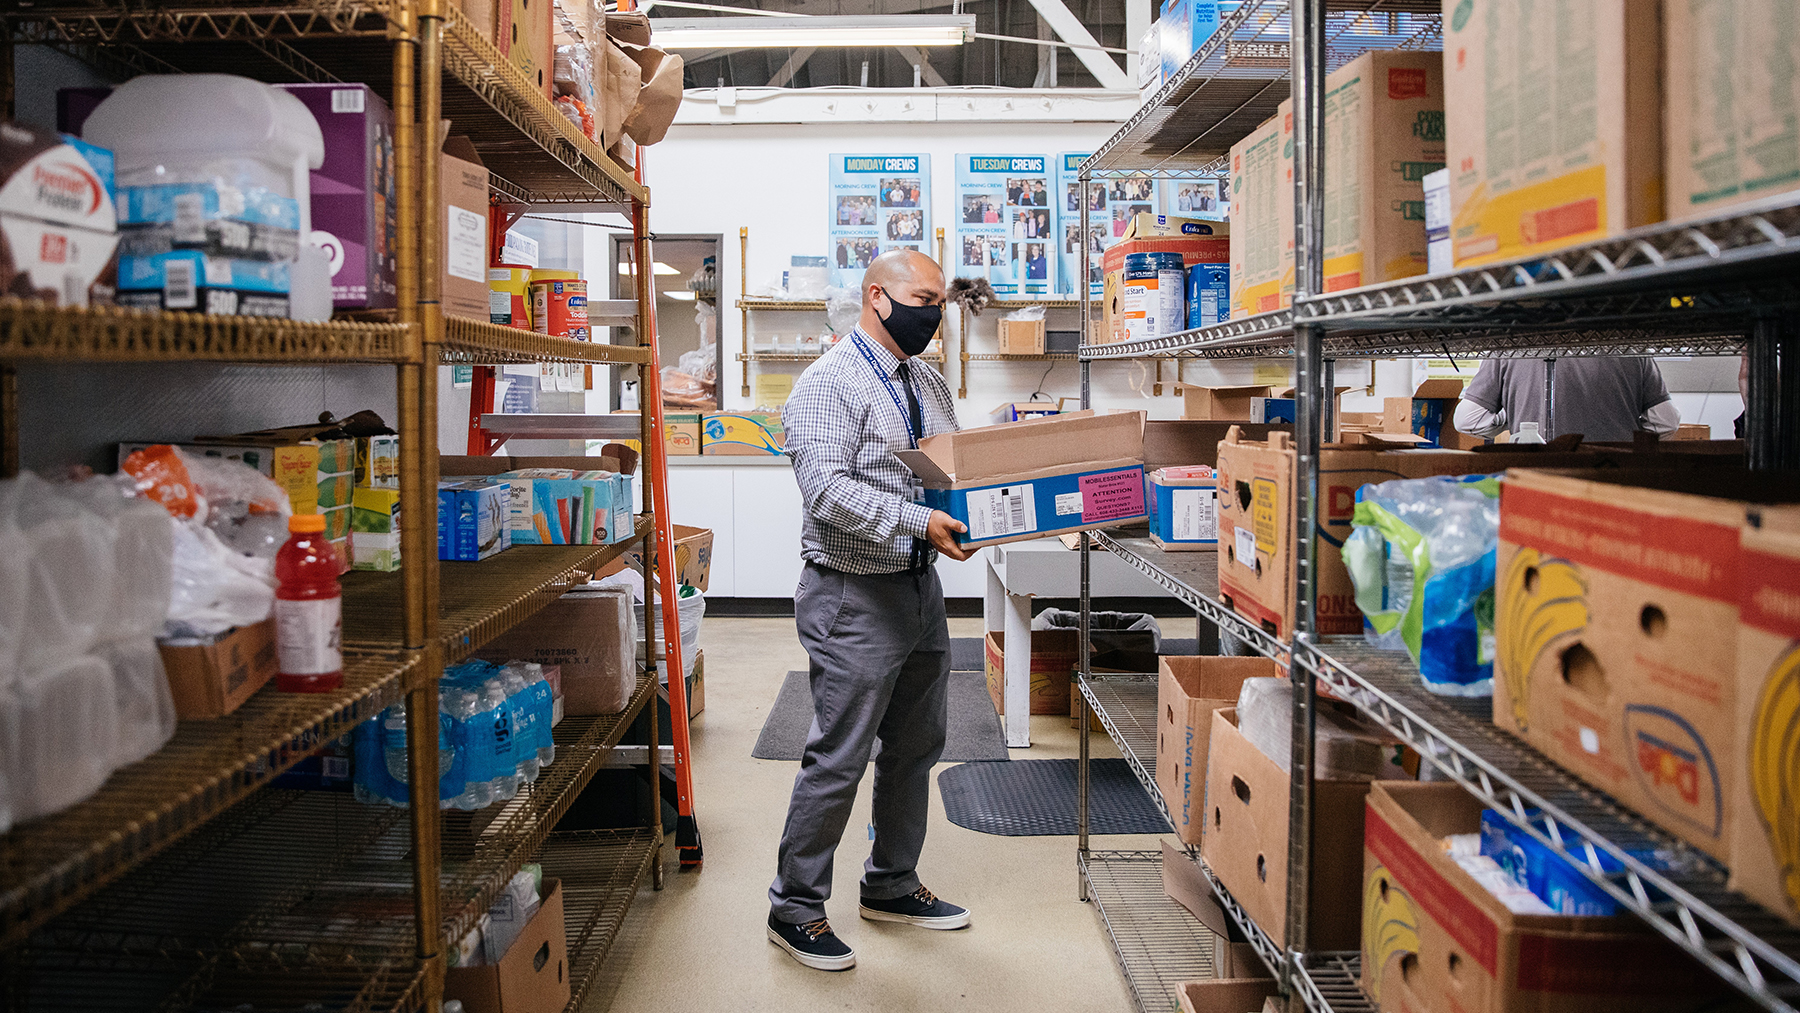 Fernando Gallegos, community health worker and pharmacy technician at Share Our Selves in Costa Mesa, CA, where donated food is repackaged and served to those in need. (Photo by Donnie Lloyd Hedden Jr. for Direct Relief)